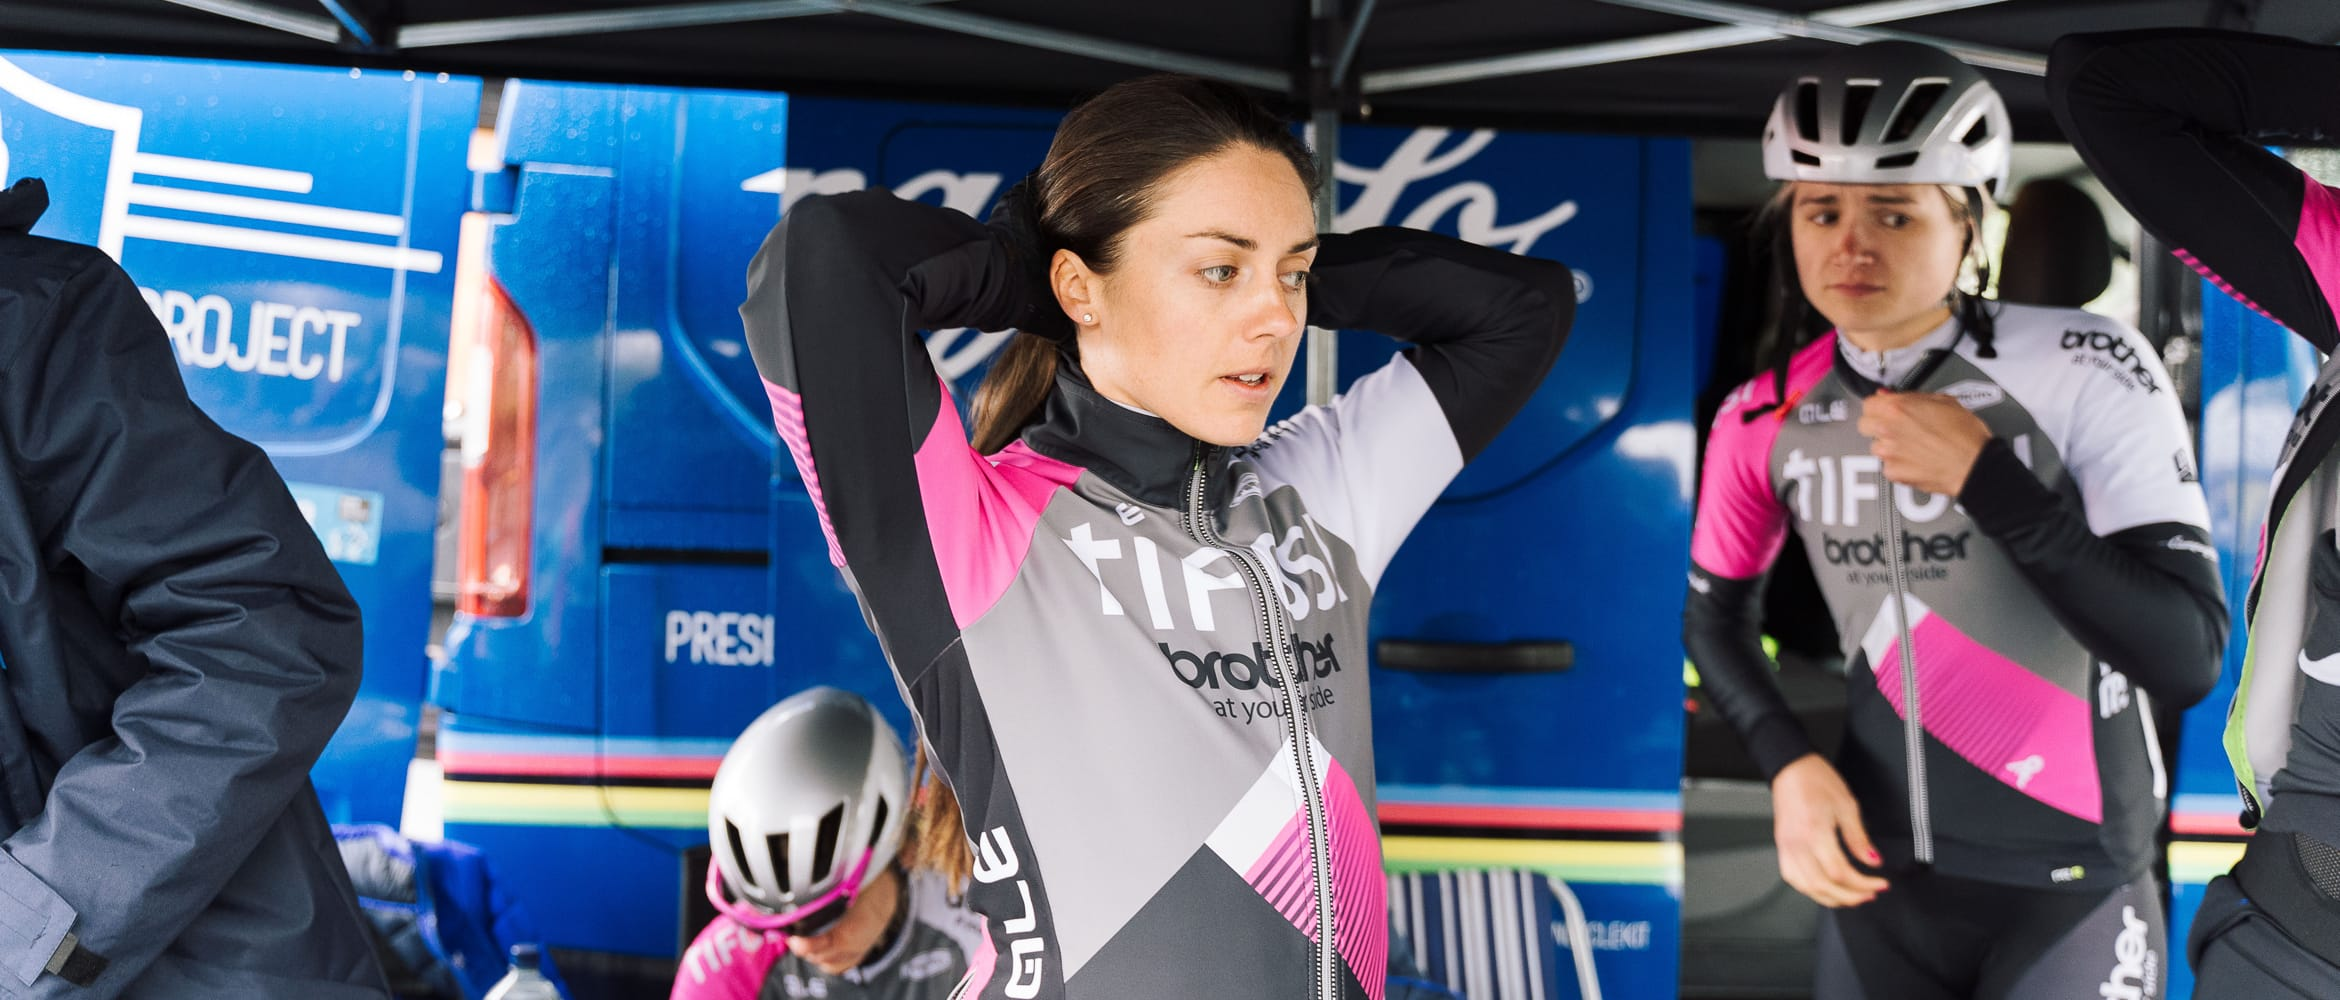 Cyclist Rebecca Durrell preparing for a race in front of a support vehicle with other team mates from the Brother UK-Tifosi p/b OnForm squad